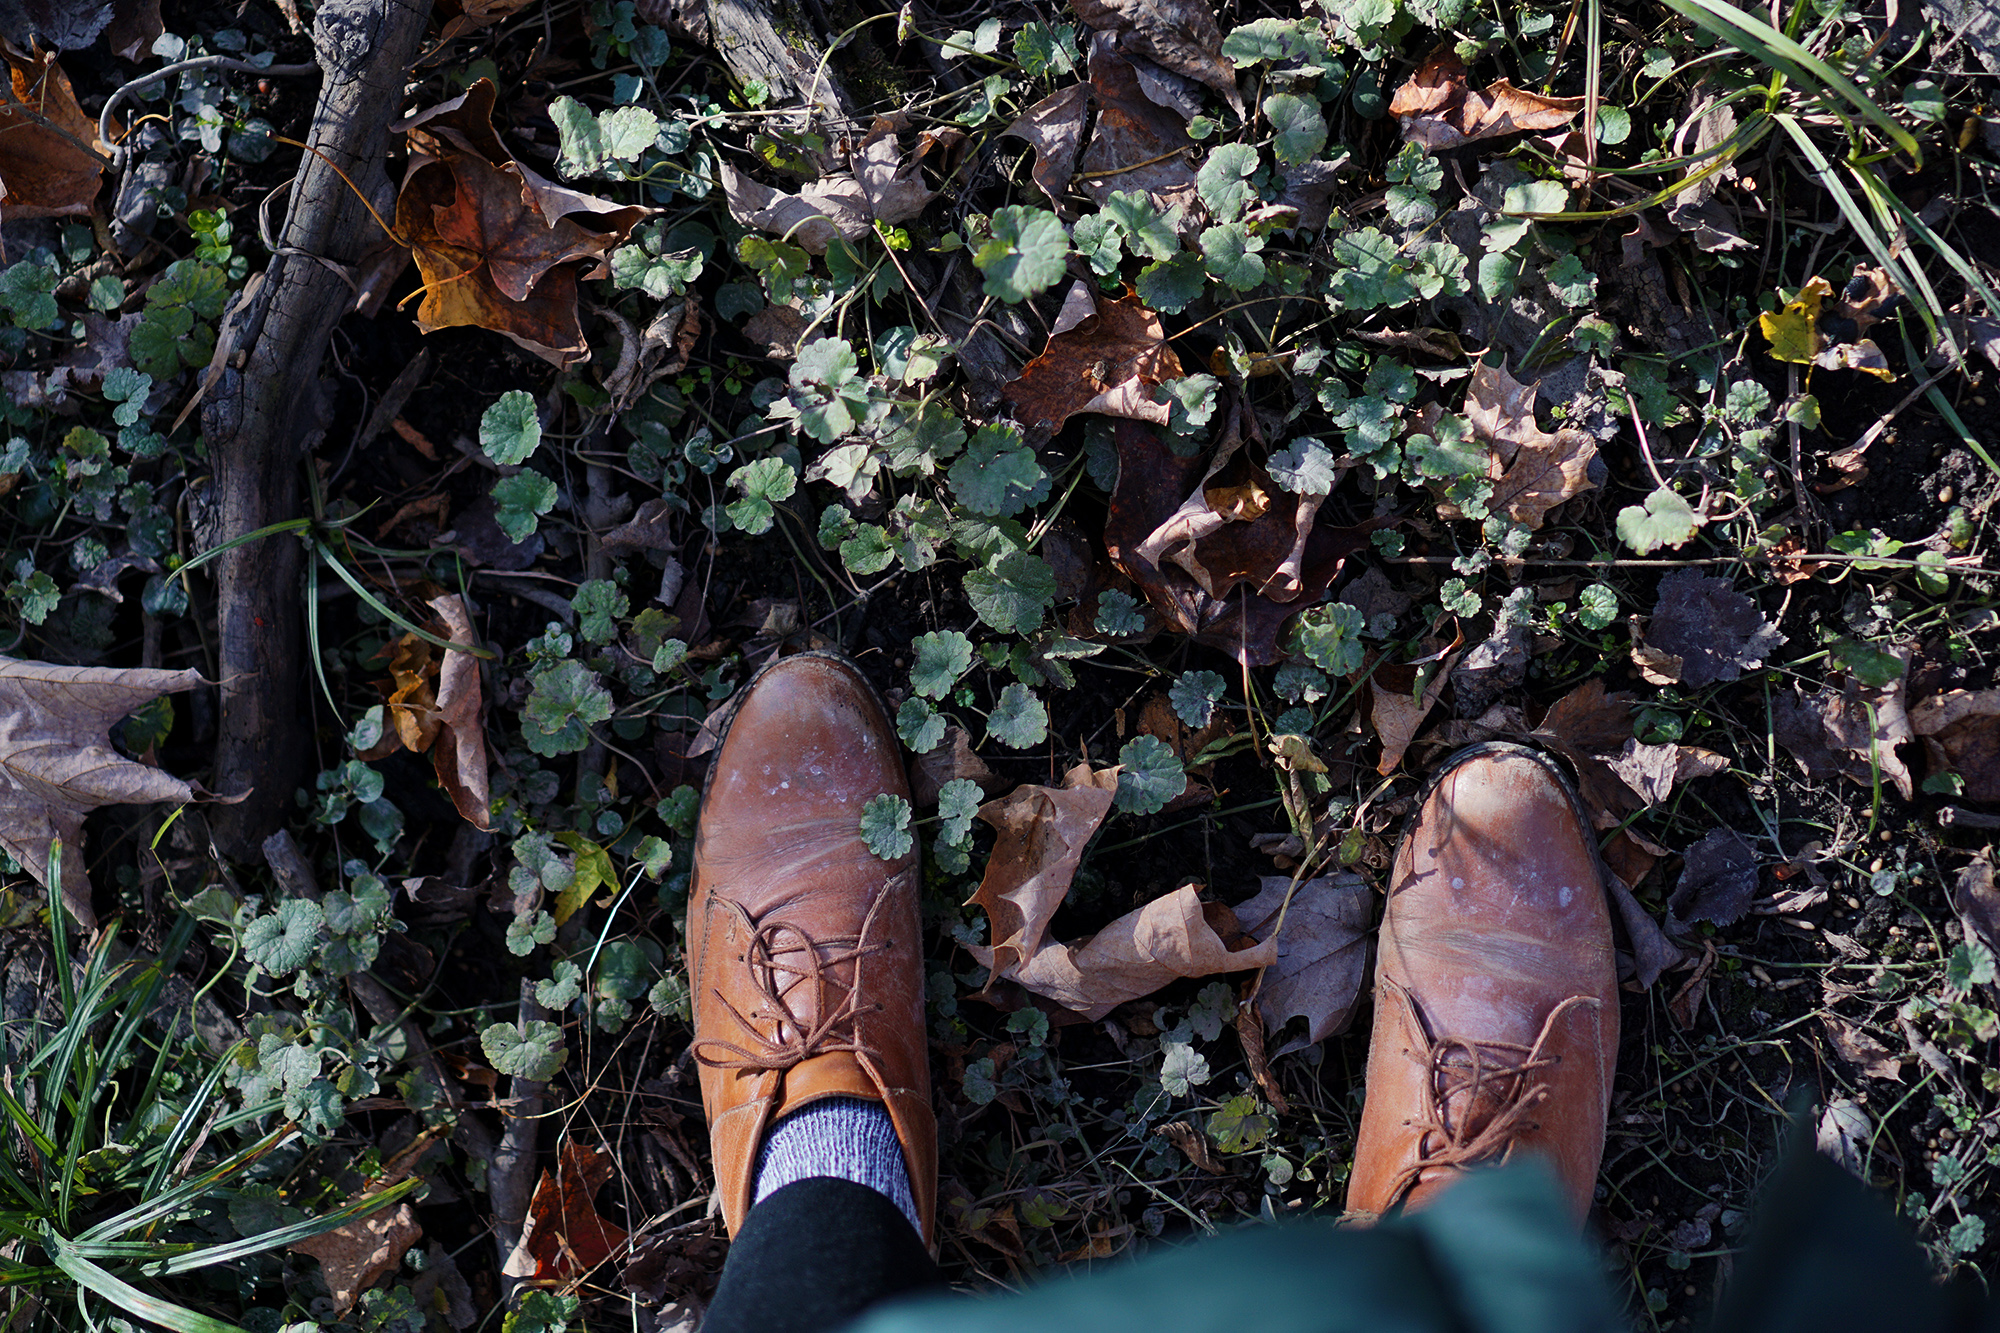 Boots in a patch of creeping charlie, Miami Woods, Morton Grove Illinois / Darker than Green